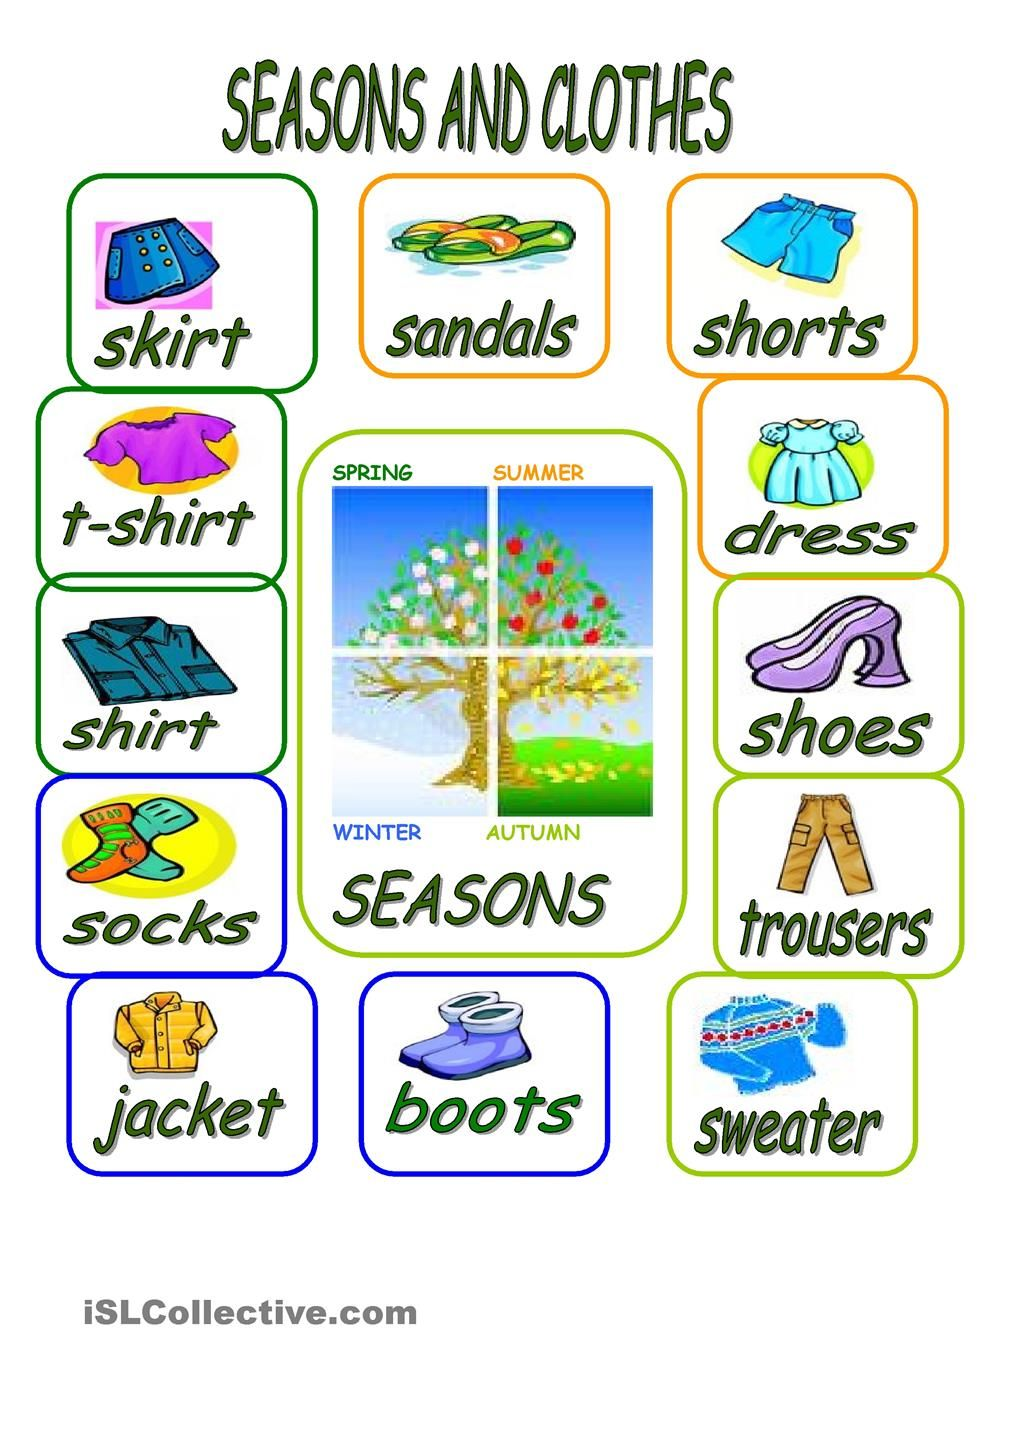 Workbooks weather expressions in spanish worksheets : CLOTHES AND SEASONS-PICTIONARY worksheet - Free ESL printable ...